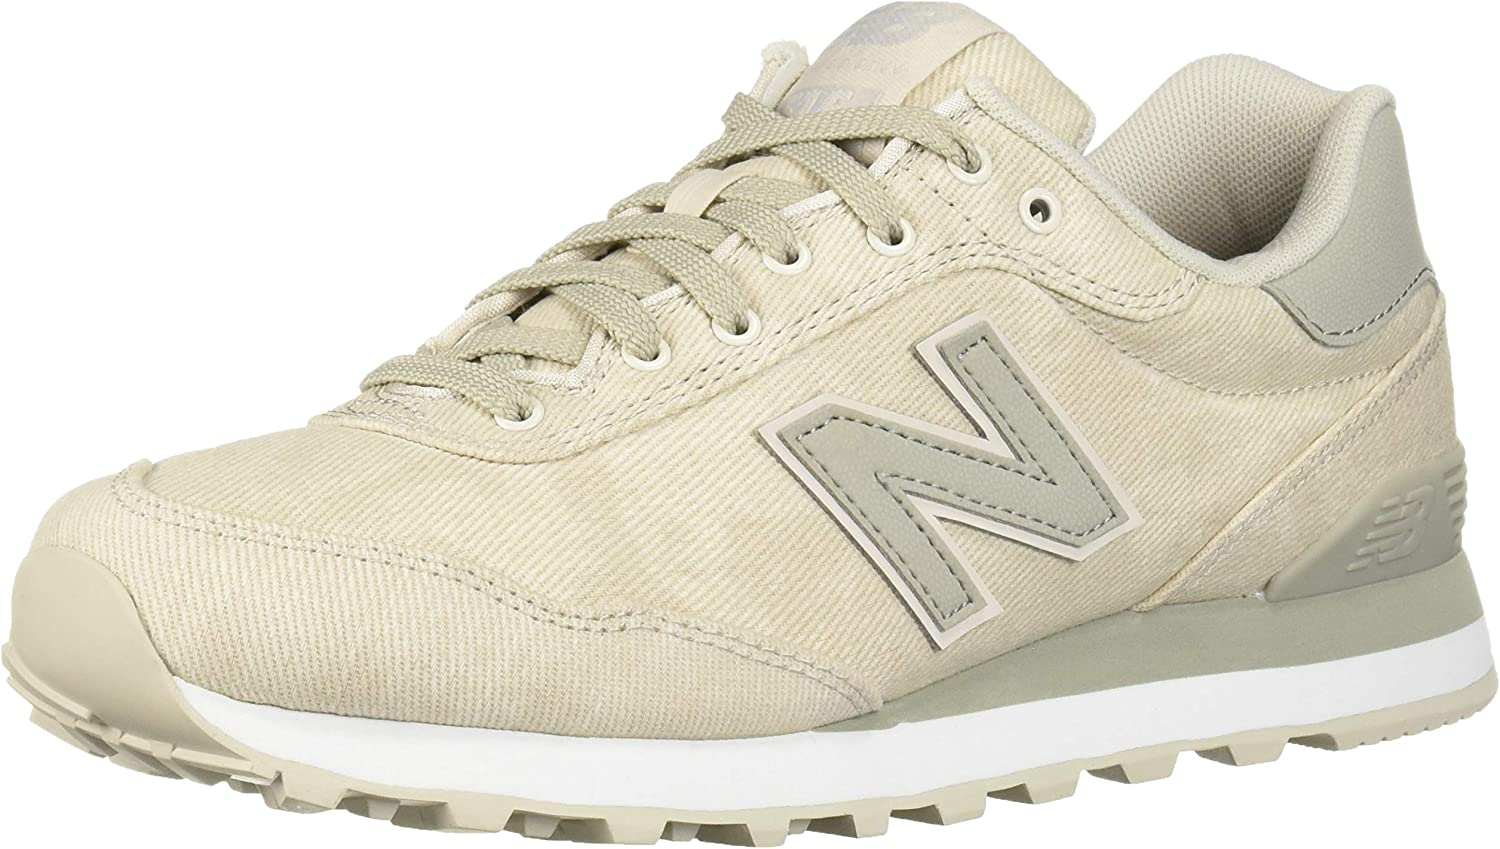 New Balance Womens 515 V1 Running Shoes